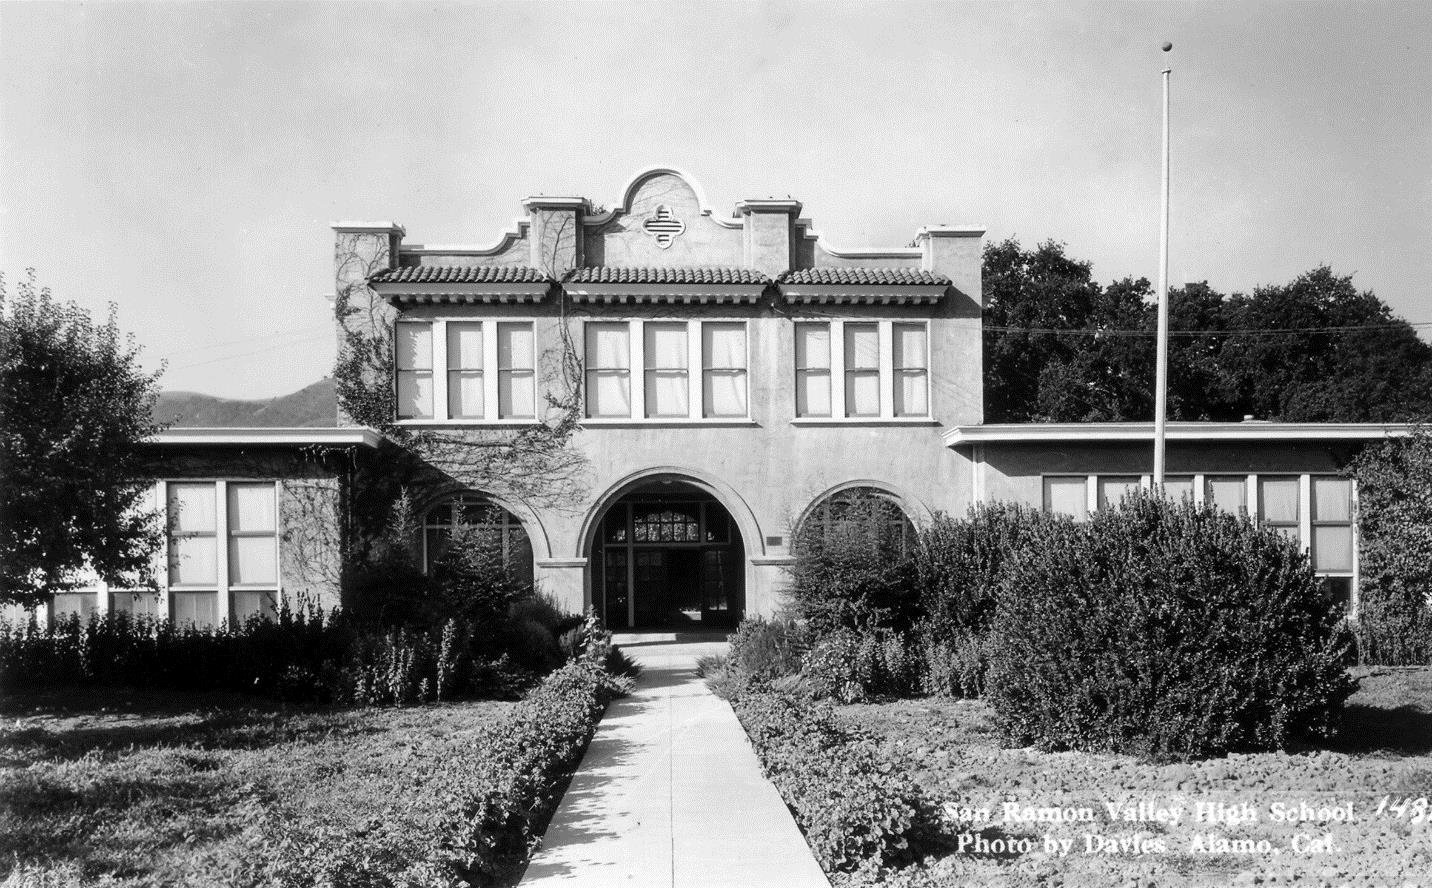 San Ramon Valley Union High School  1948